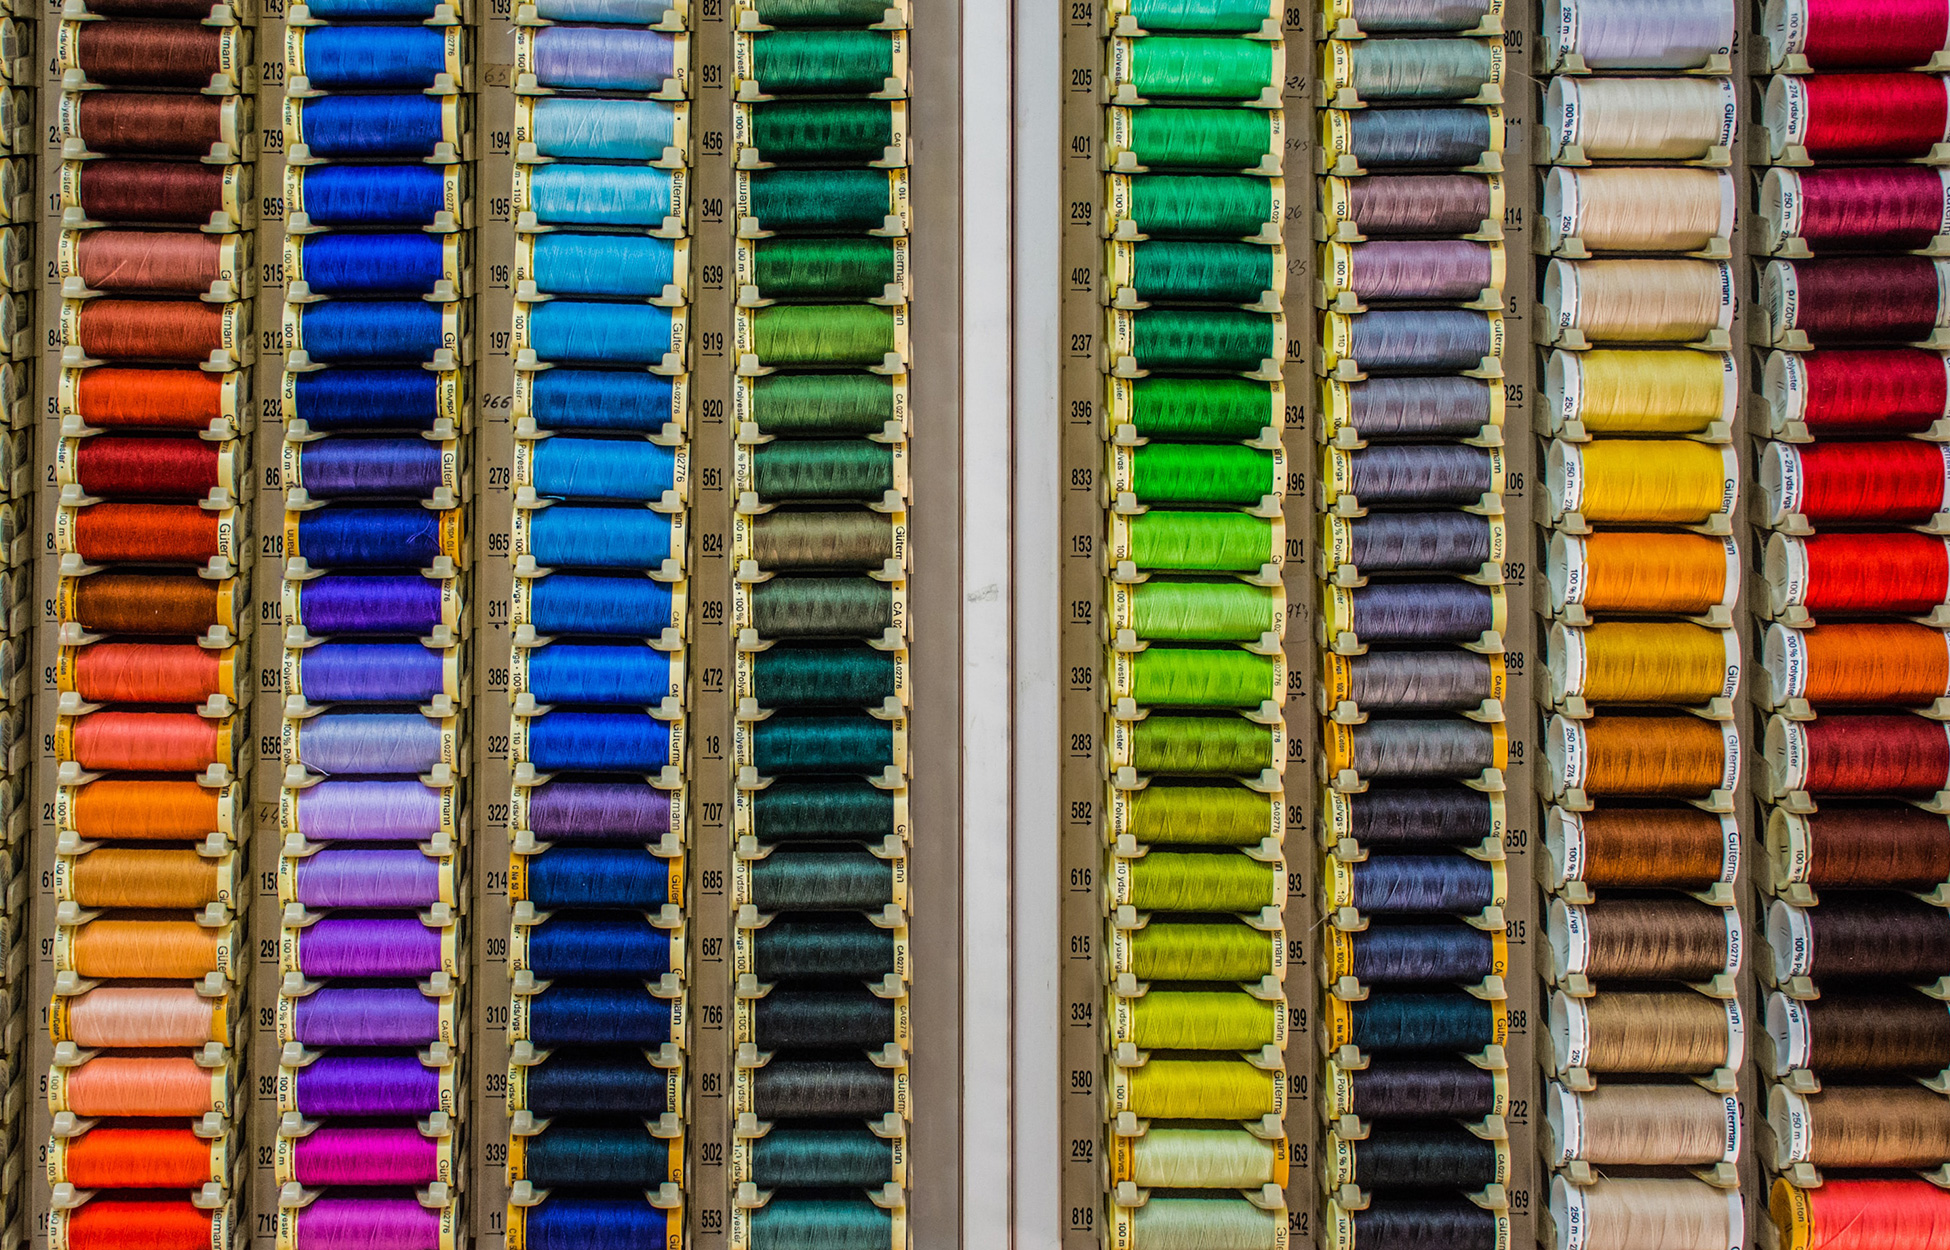 Zobi Fashion Design Consultancy | Where to find dress making fabric?